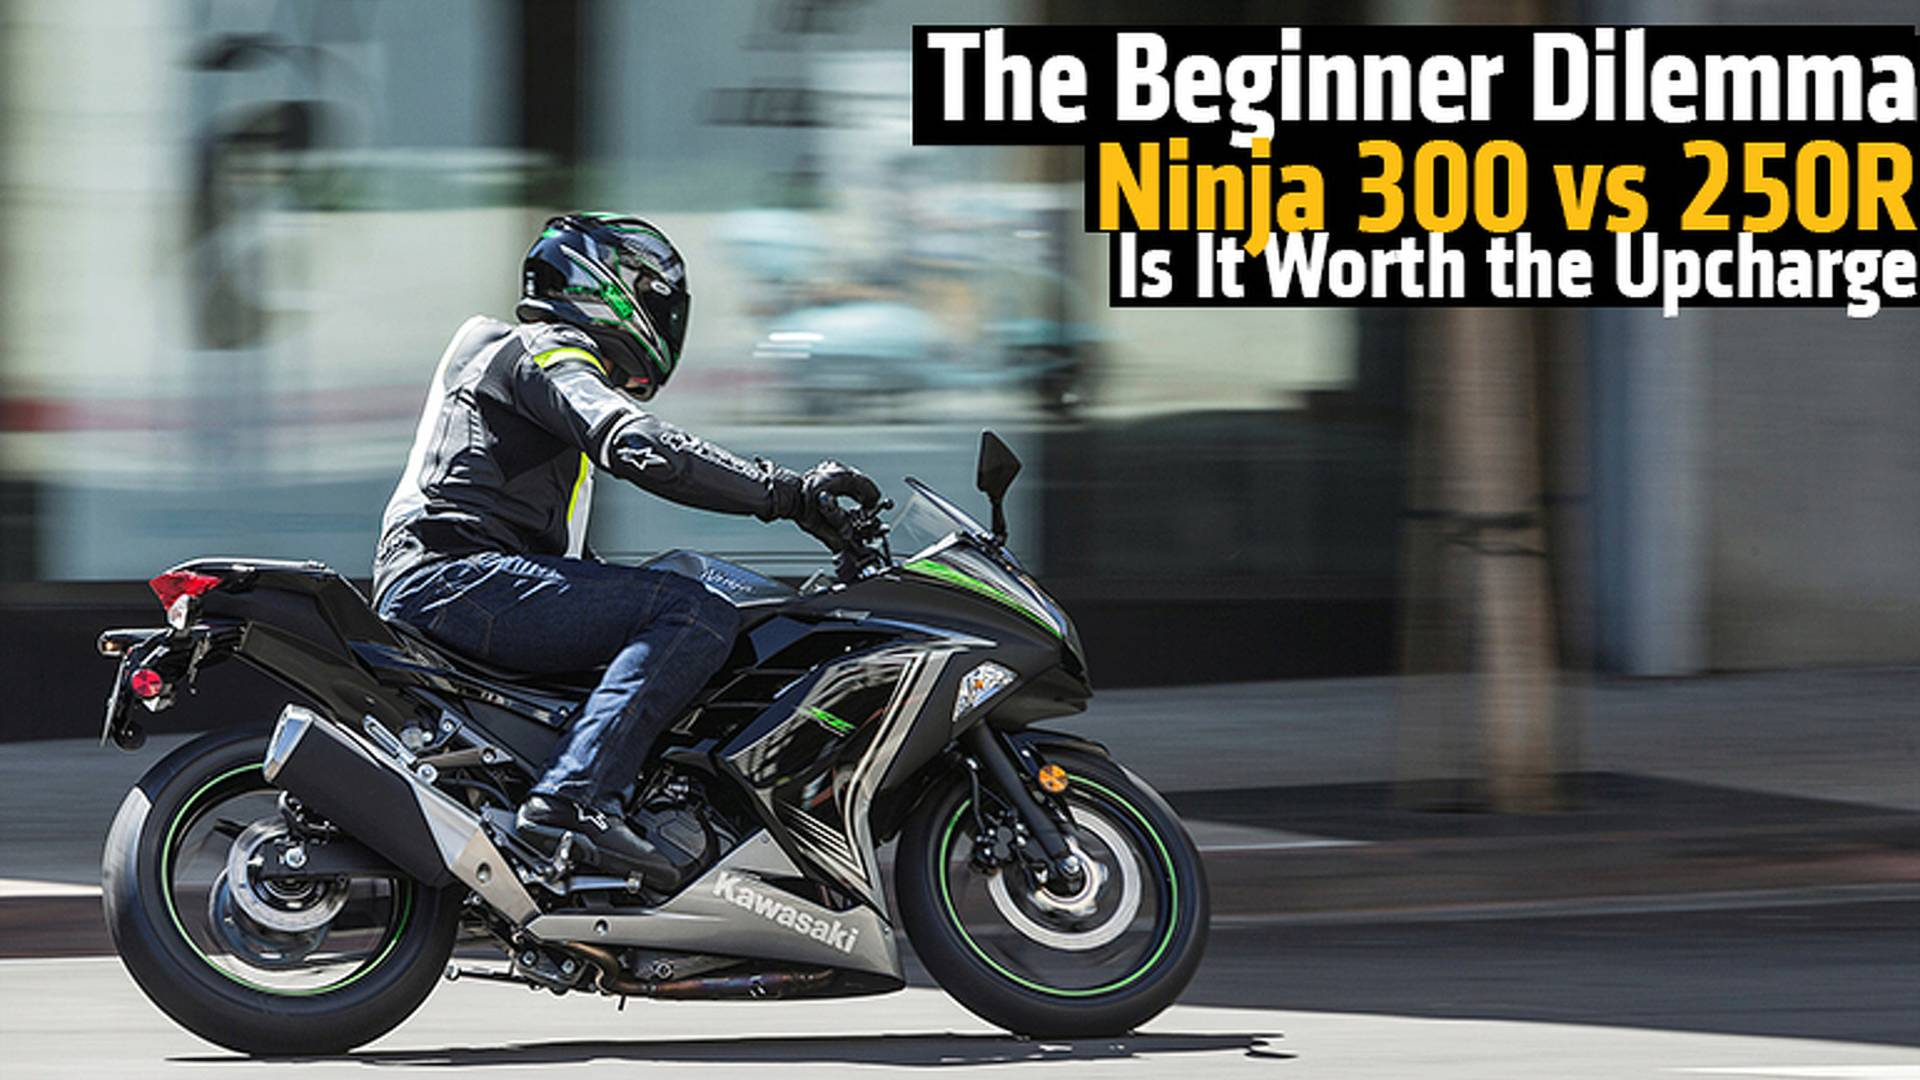 The Beginner Dilemma: Ninja 300 vs 250R